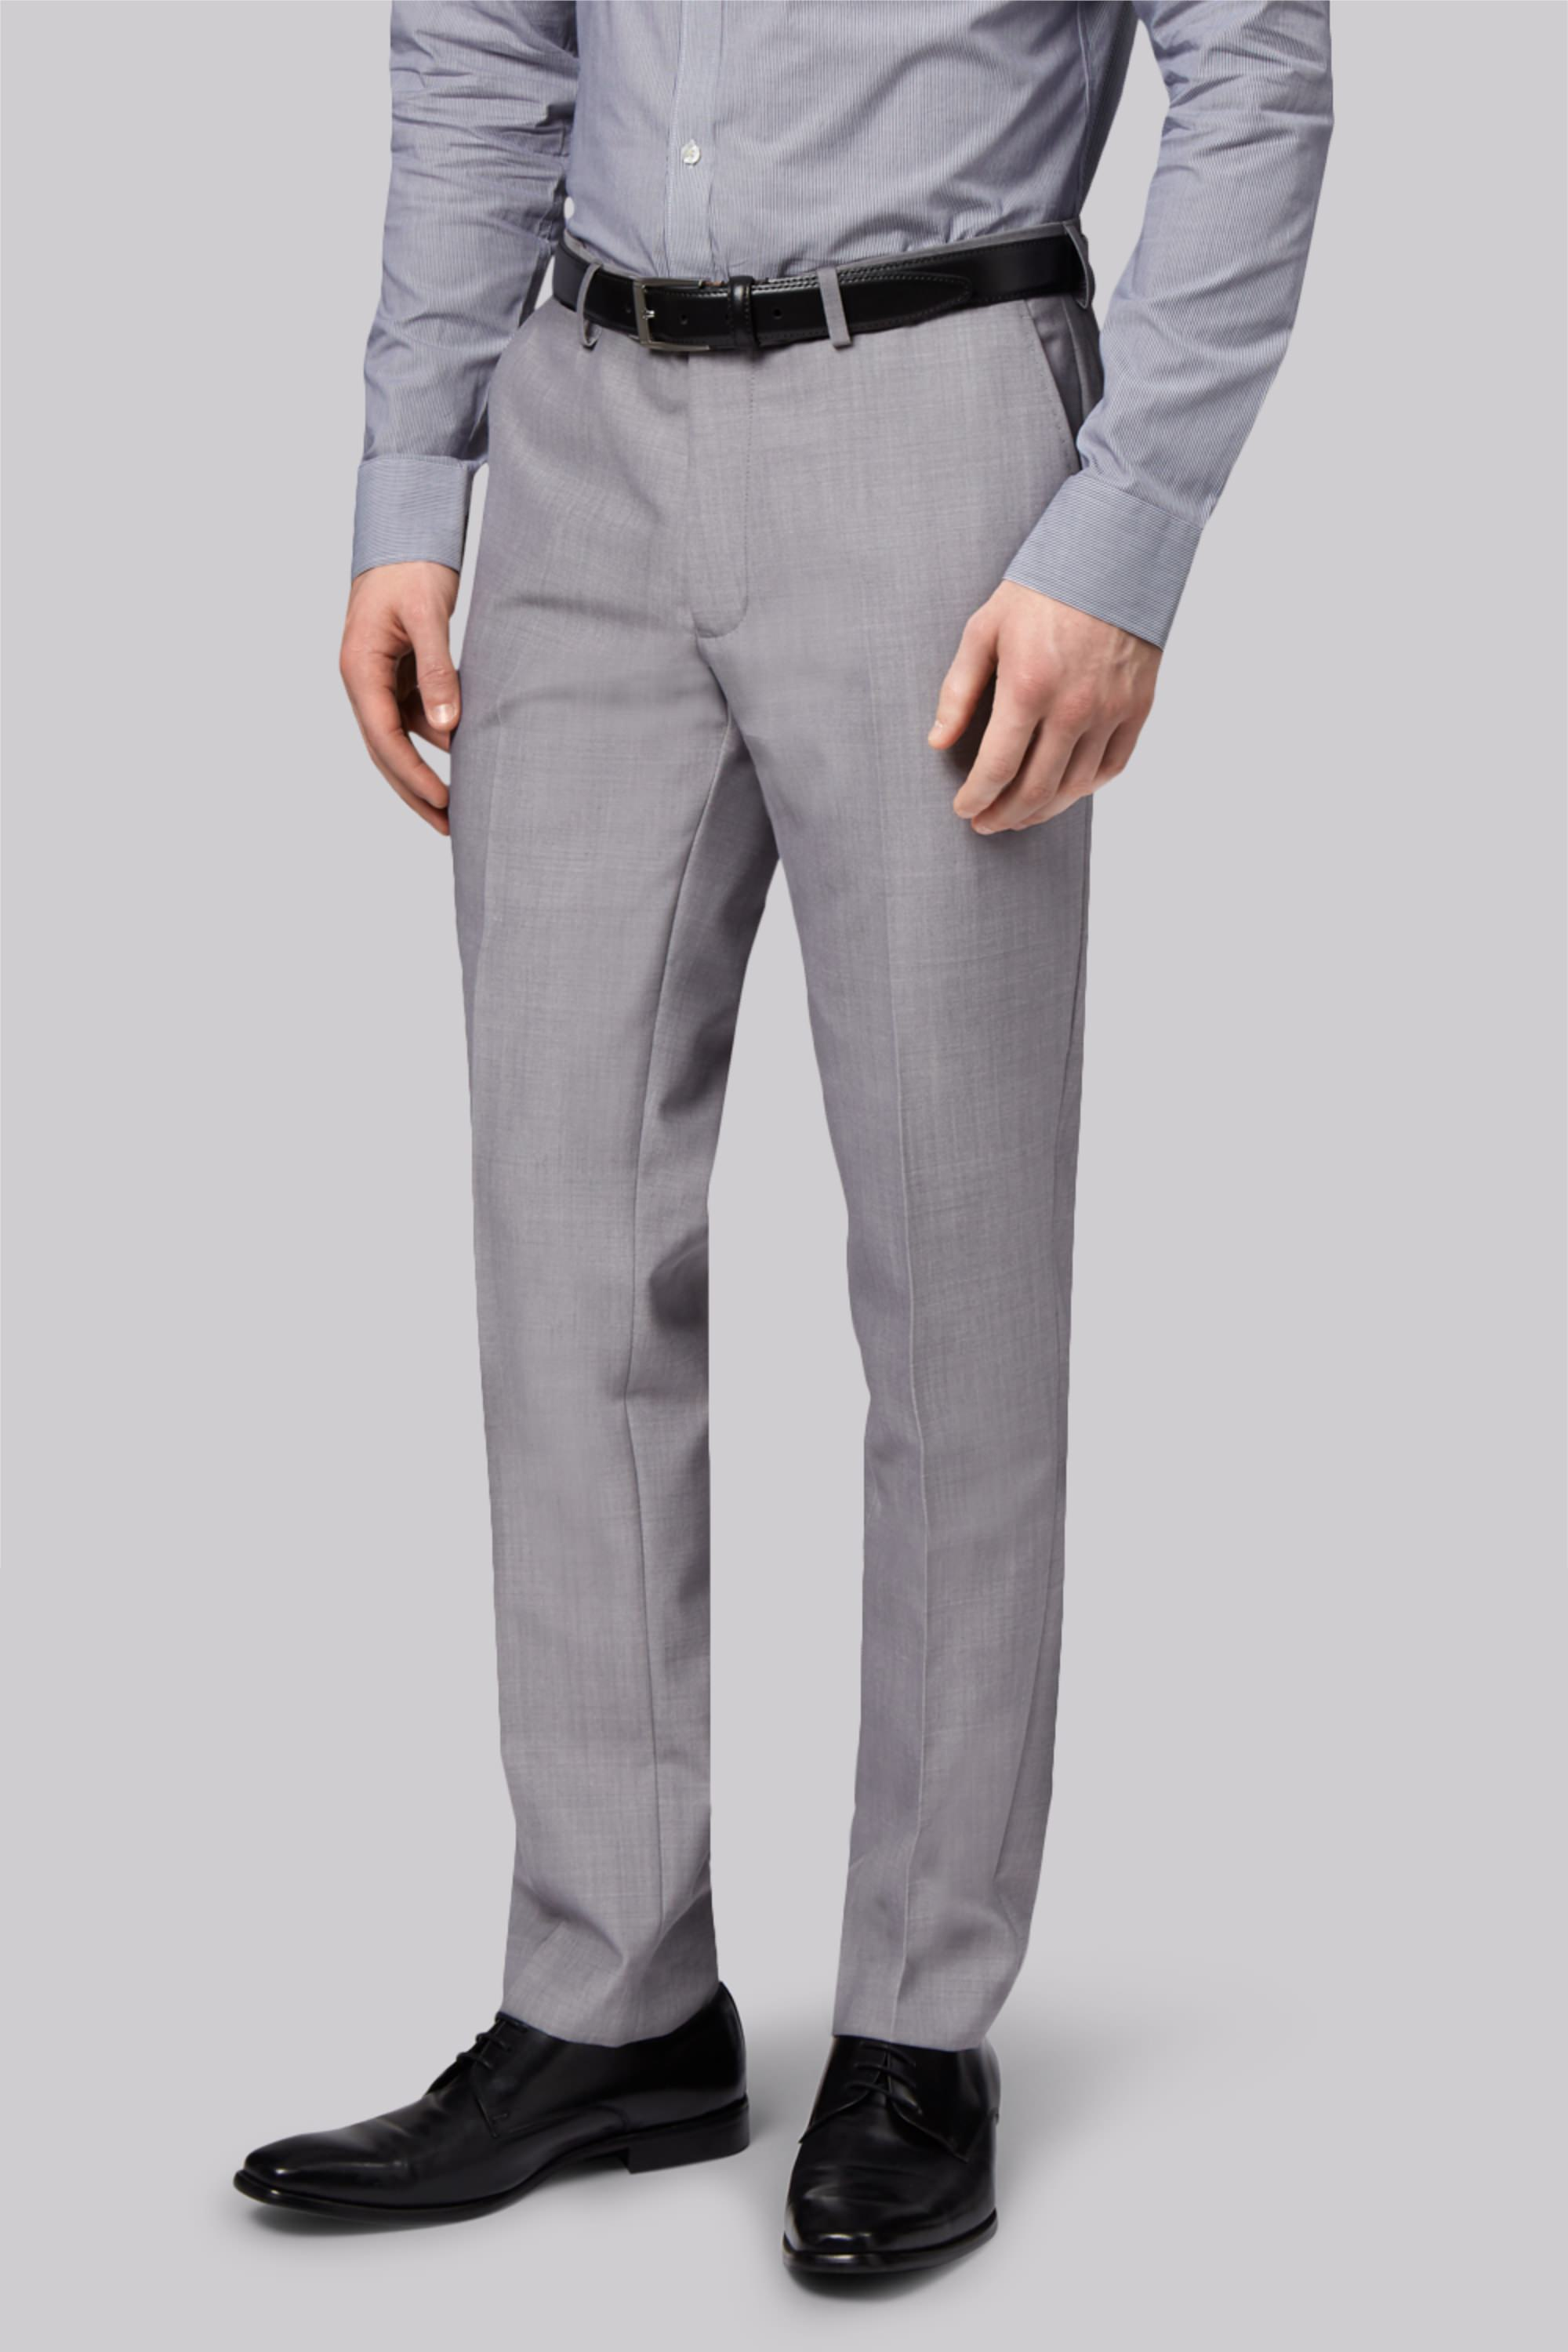 London Skinny Fit Light Grey Trousers